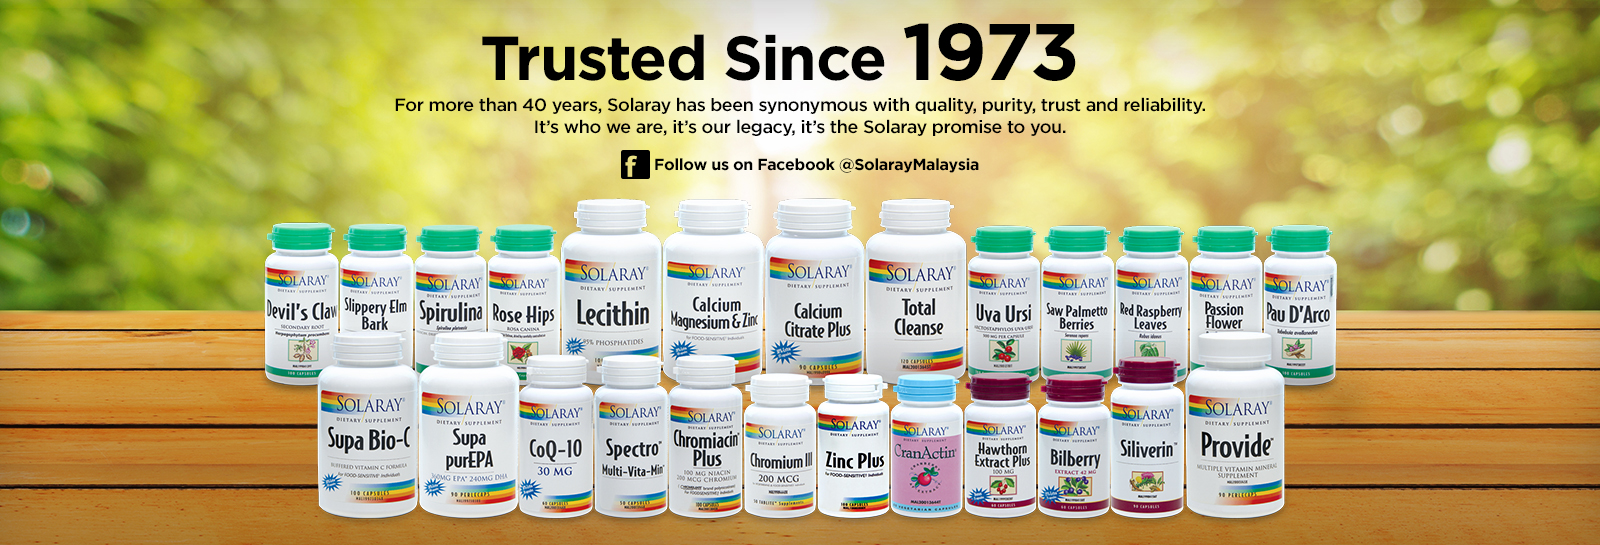 Trusted Since 1973